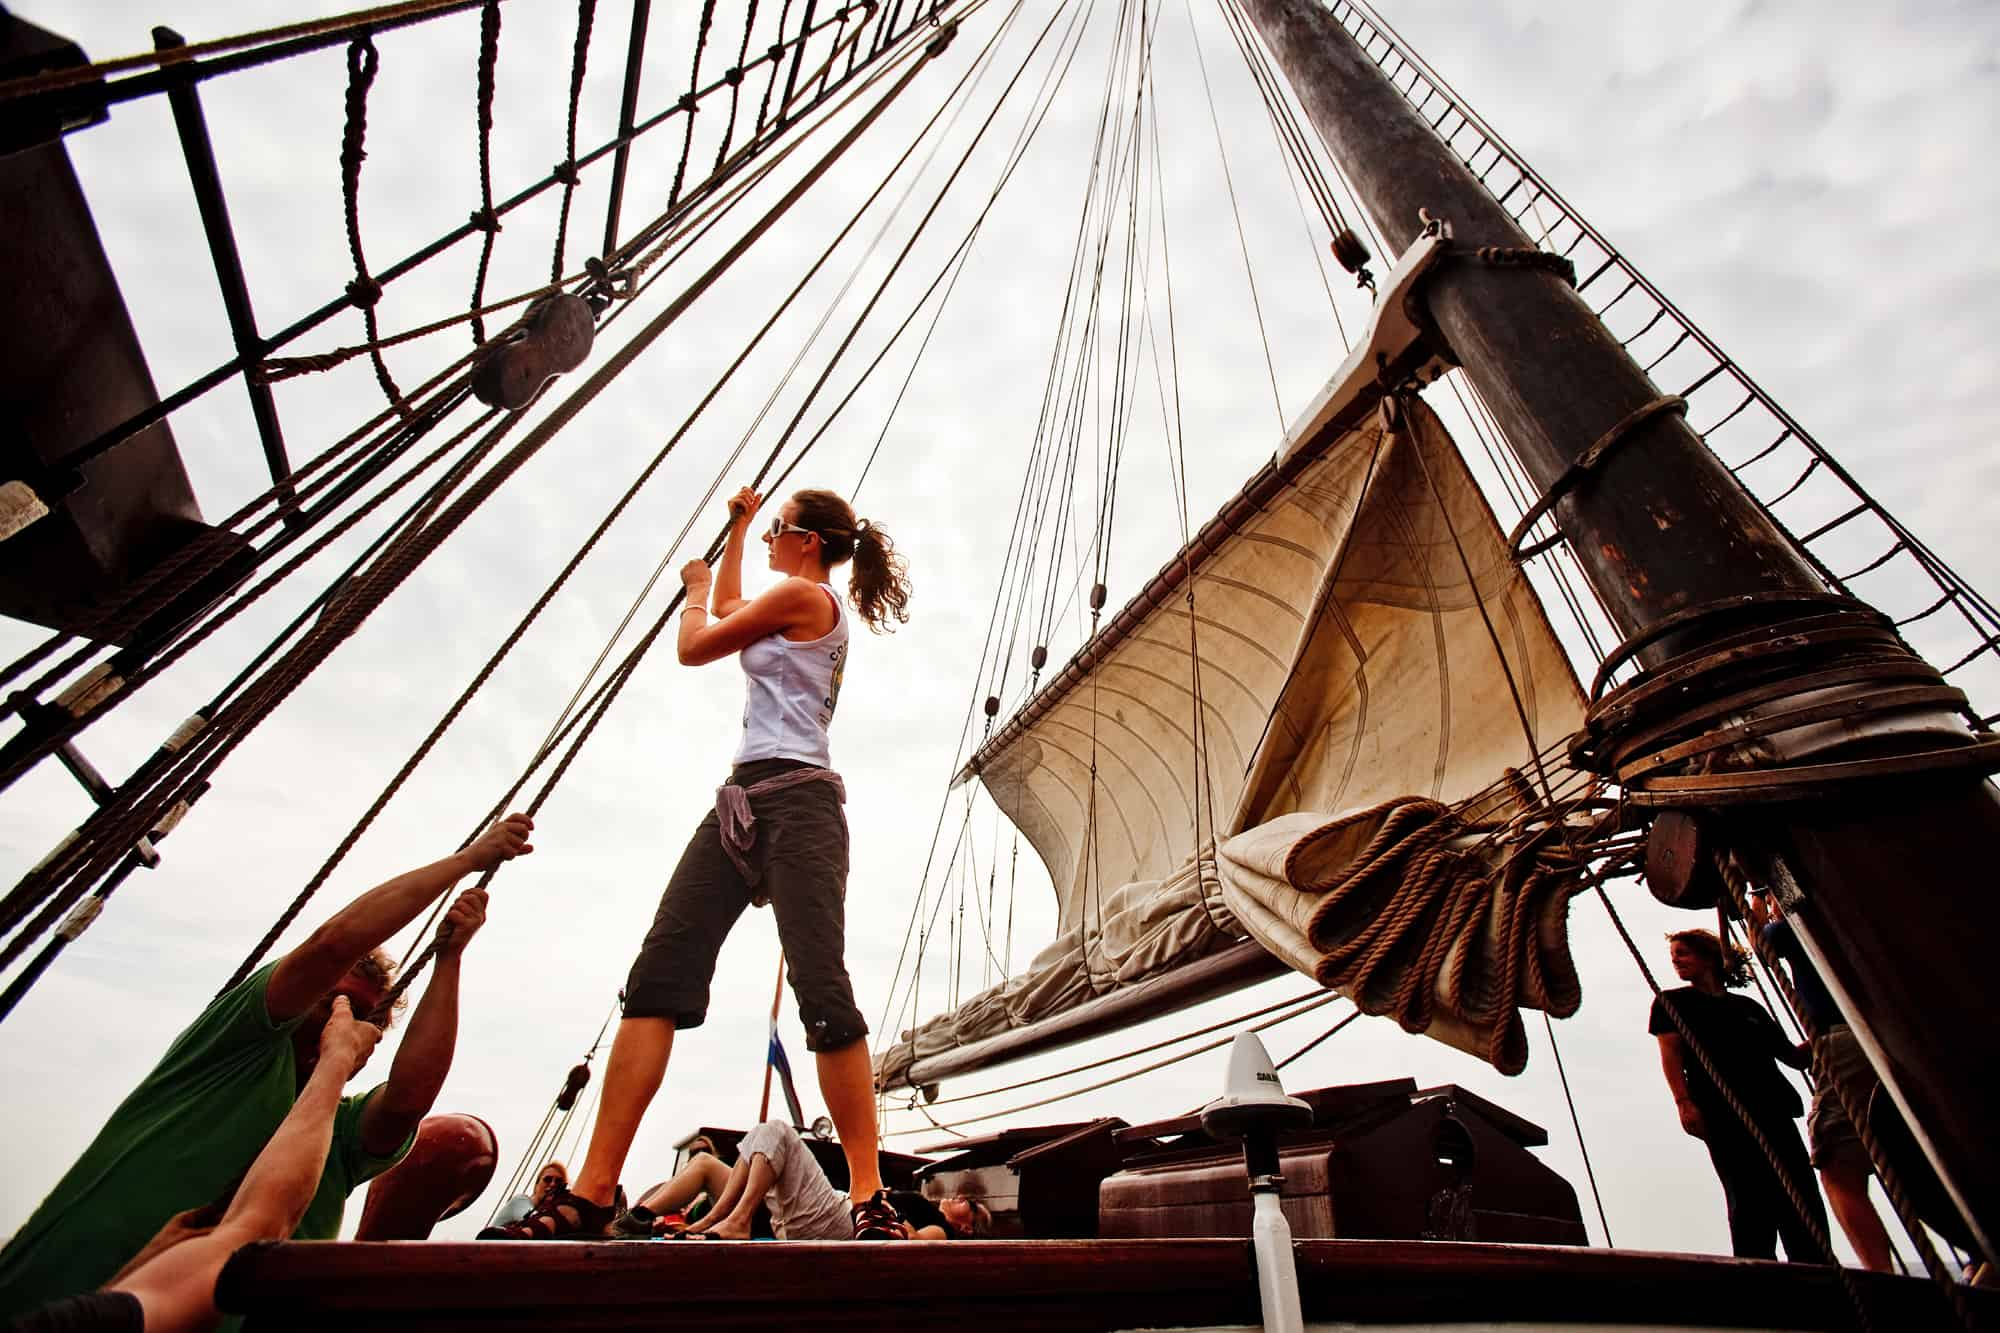 Photo by Arthur Smeets. Setting the main sail requires teams on two halliards